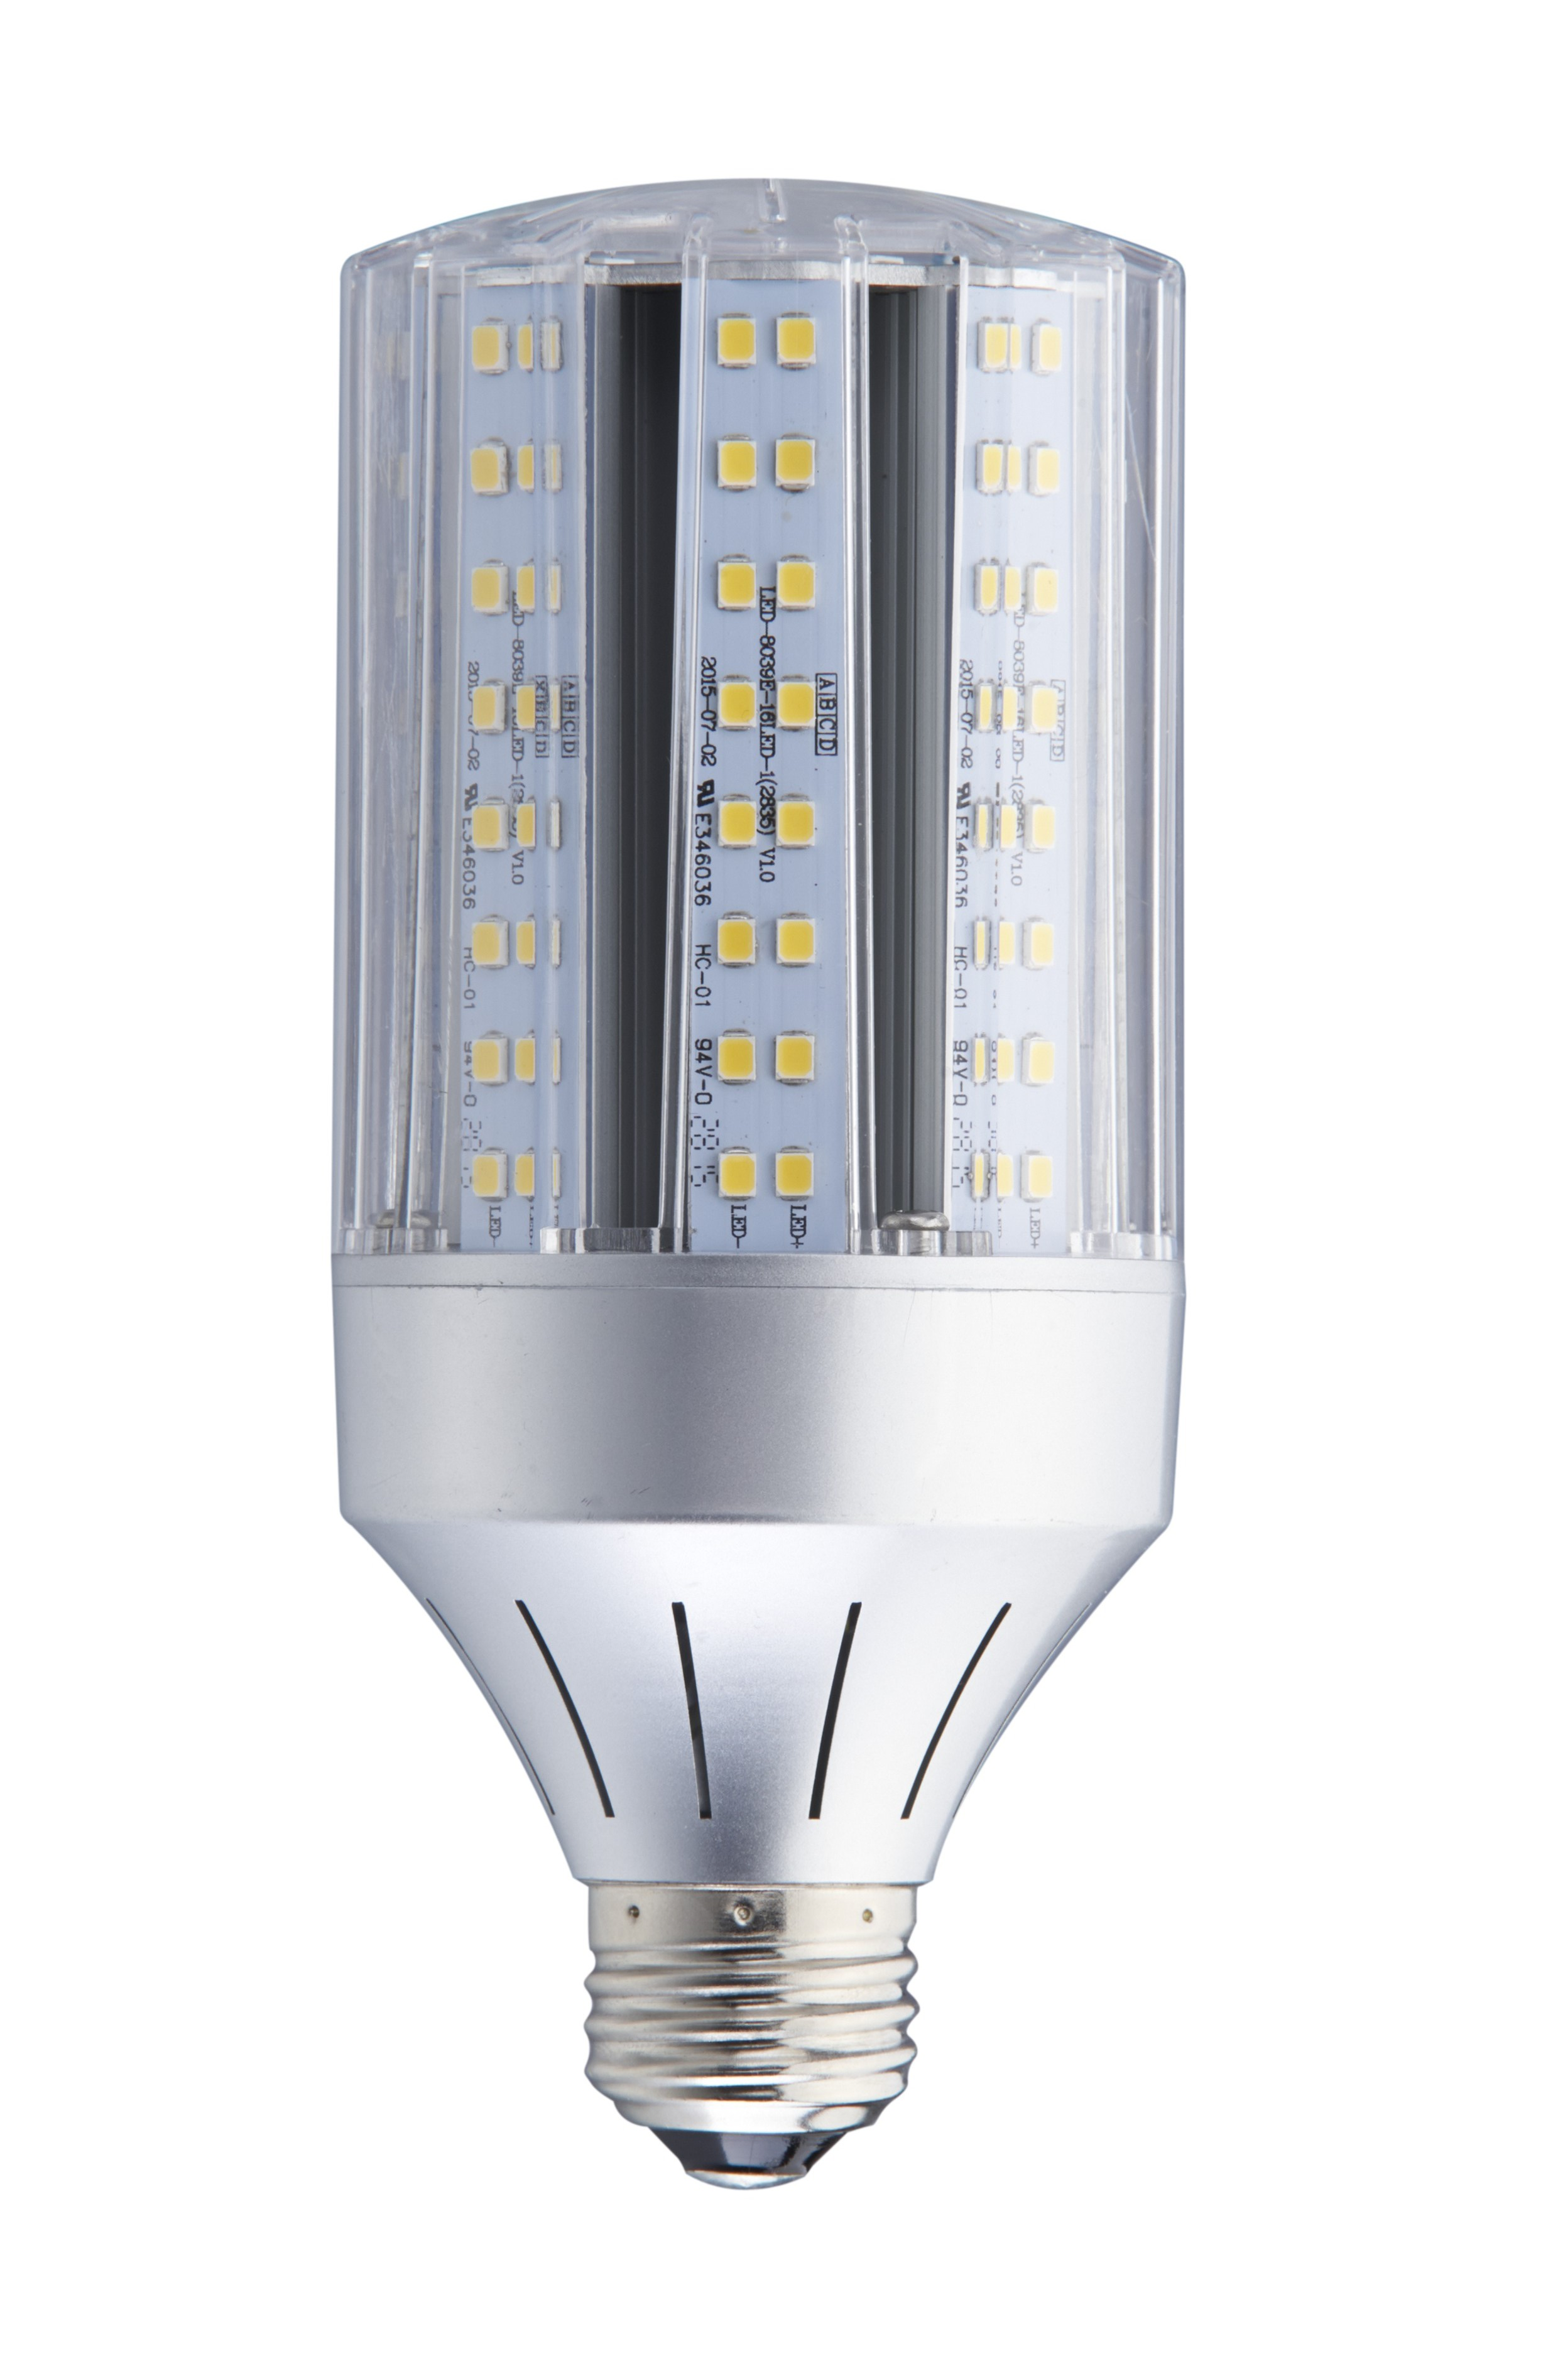 quartz high prof tubes wid lamps na discharge conventional large metal product lamp lighting bu philips pk switch start protected and intensity halide